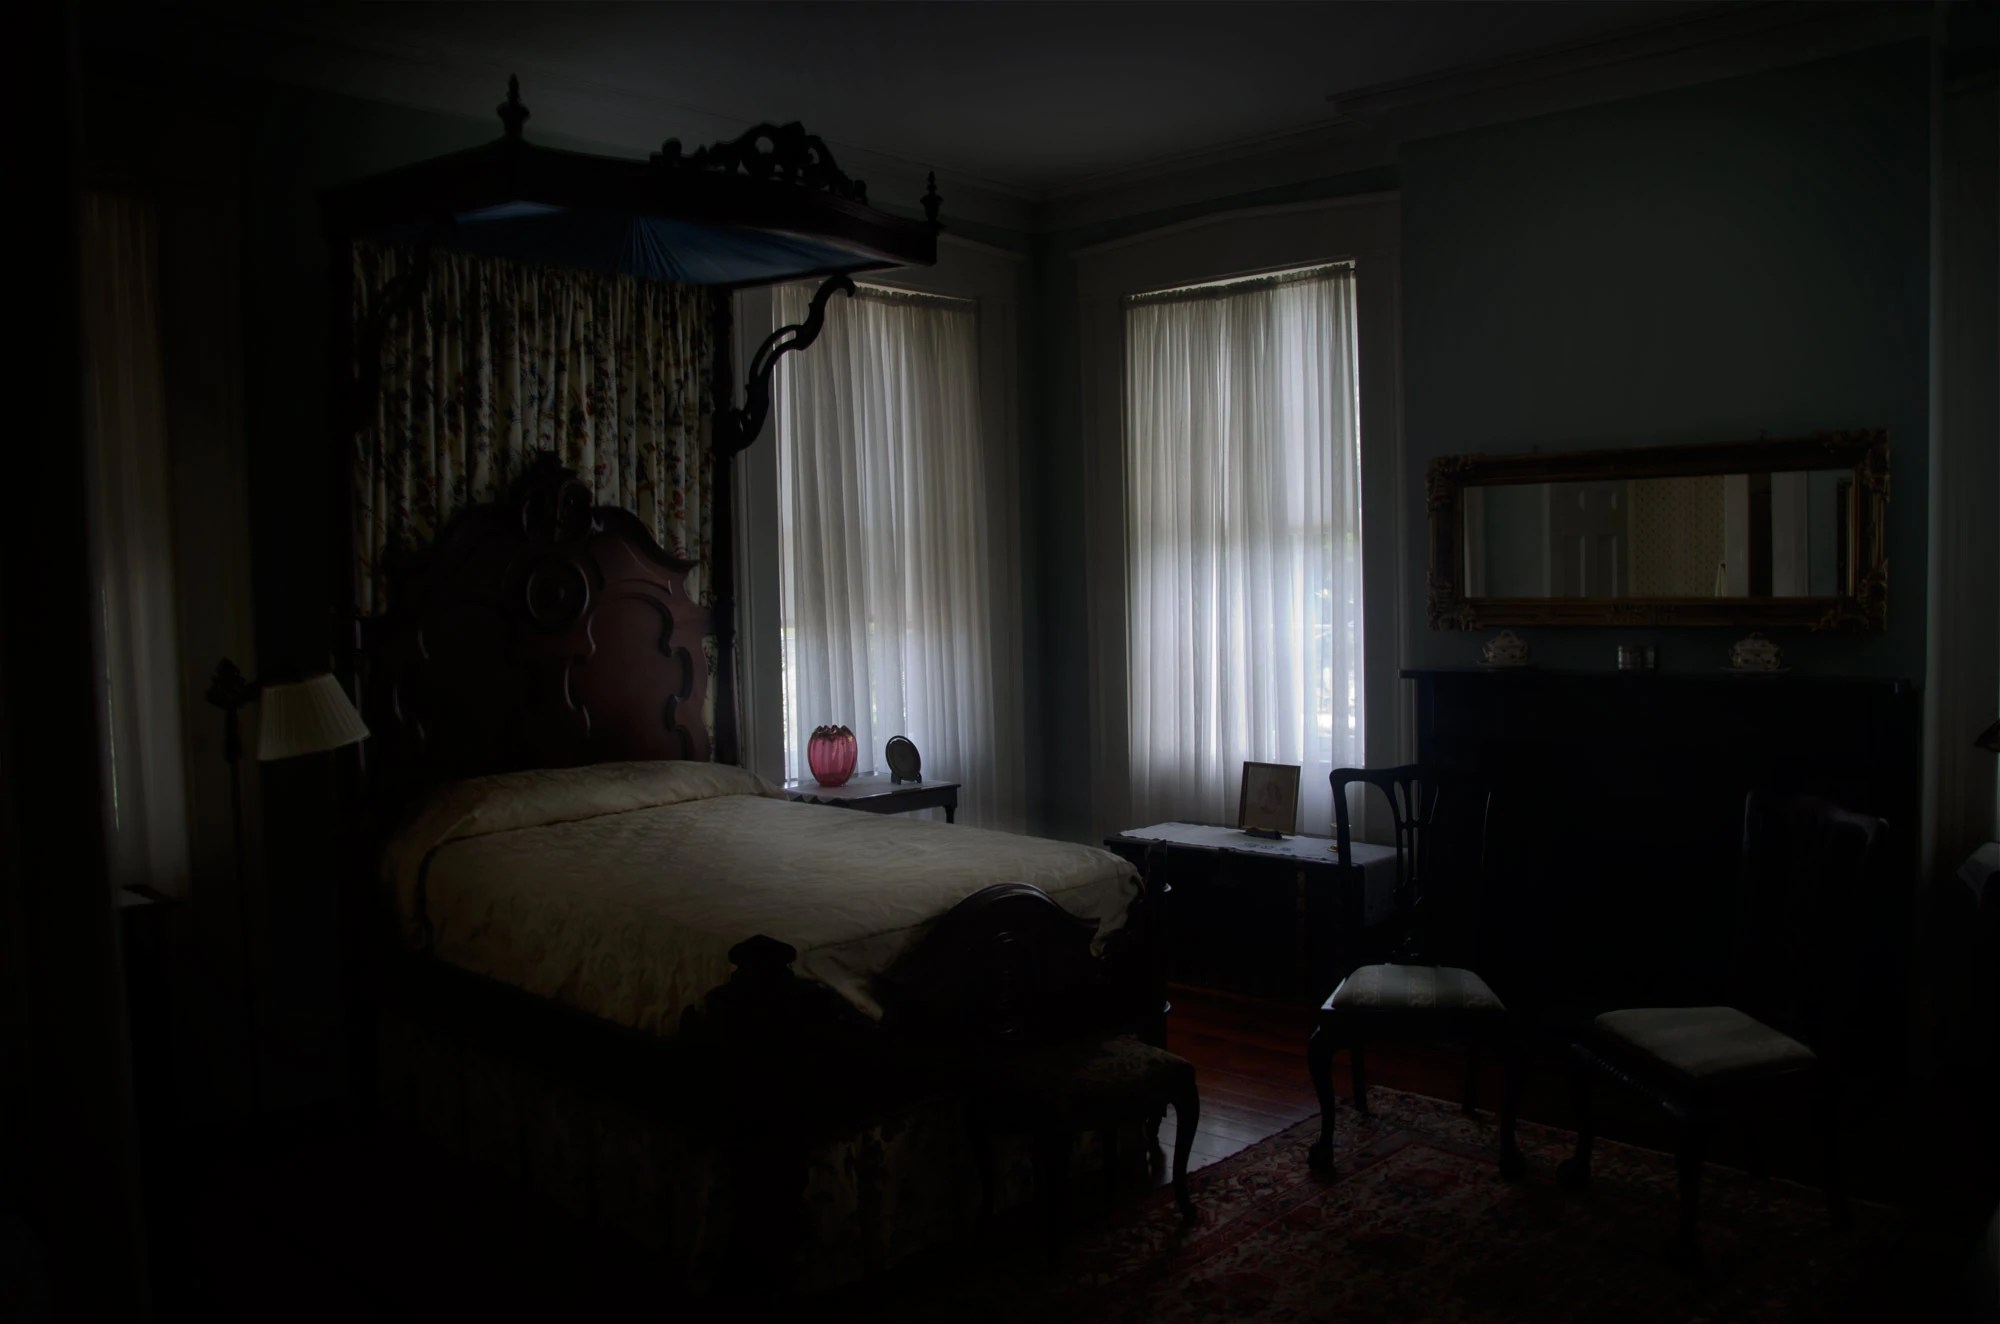 Dark Room with Window and Bed